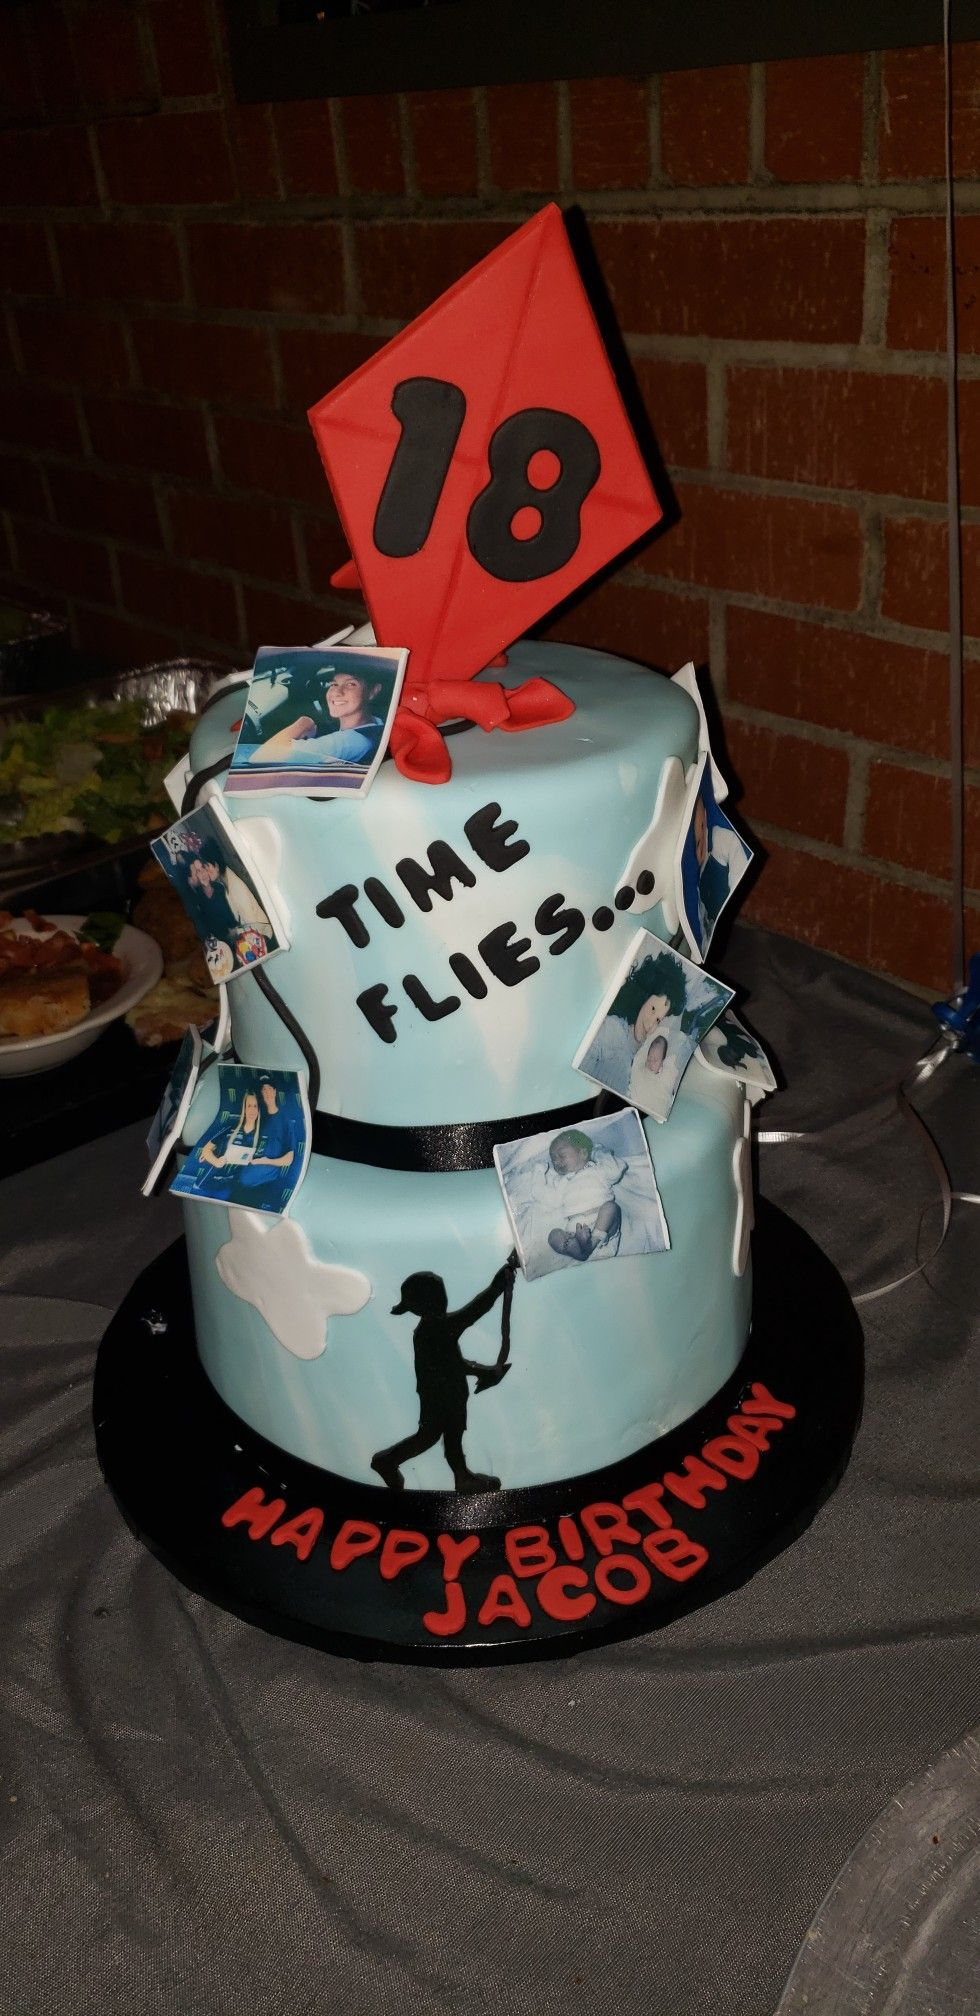 18th Birthday Cake Ideas For Guys : birthday, ideas, Flies, Birthday, Cake., Party, Cake,